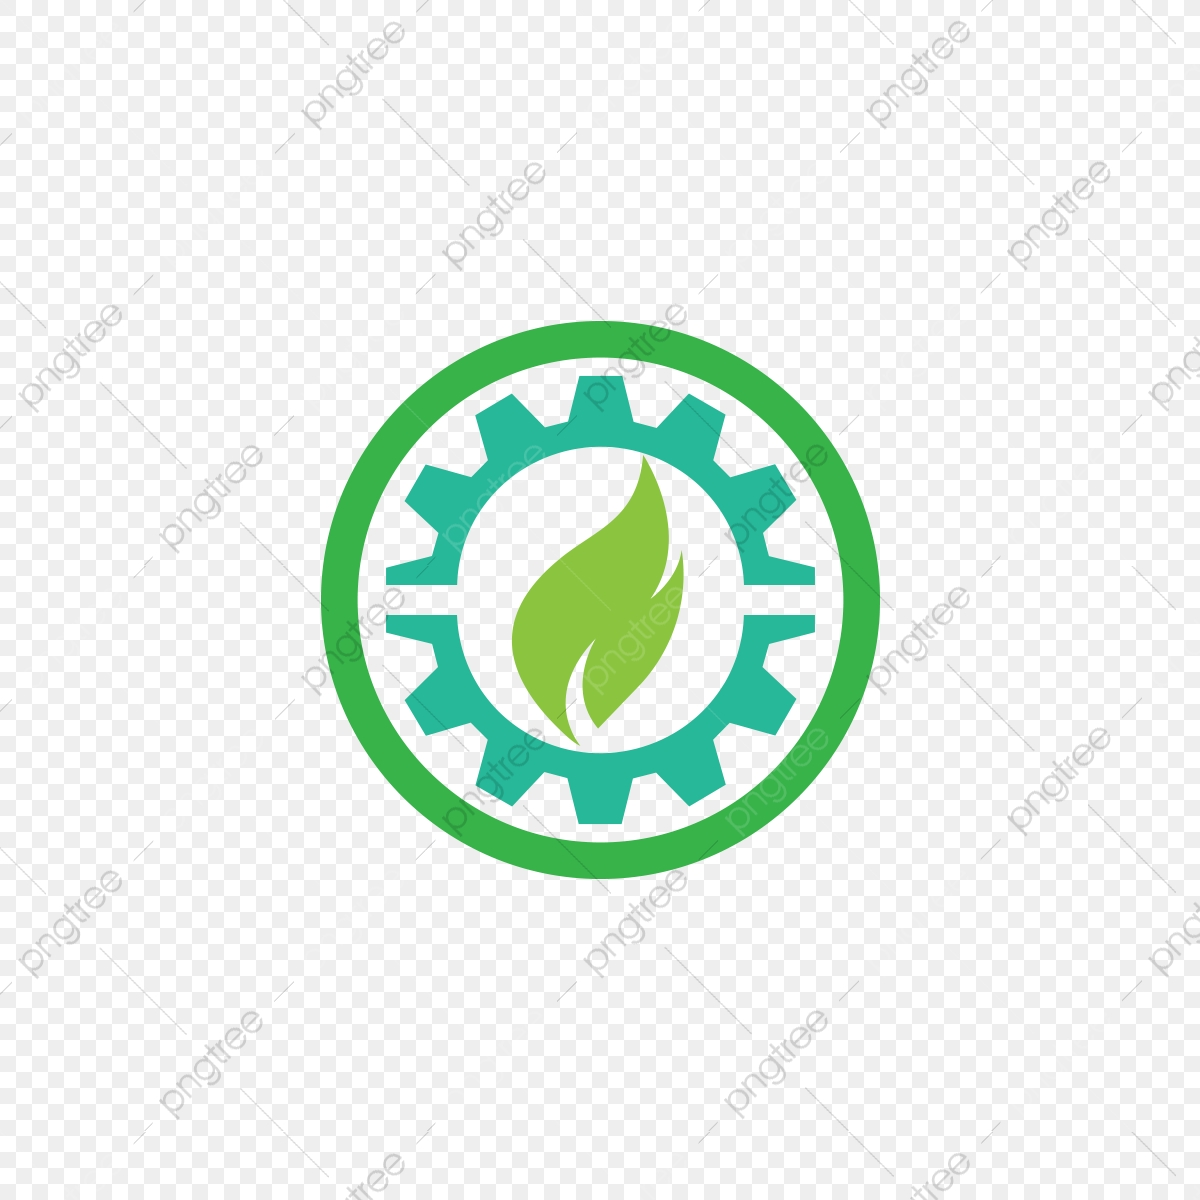 24+ Energy Symbol Transparent Background